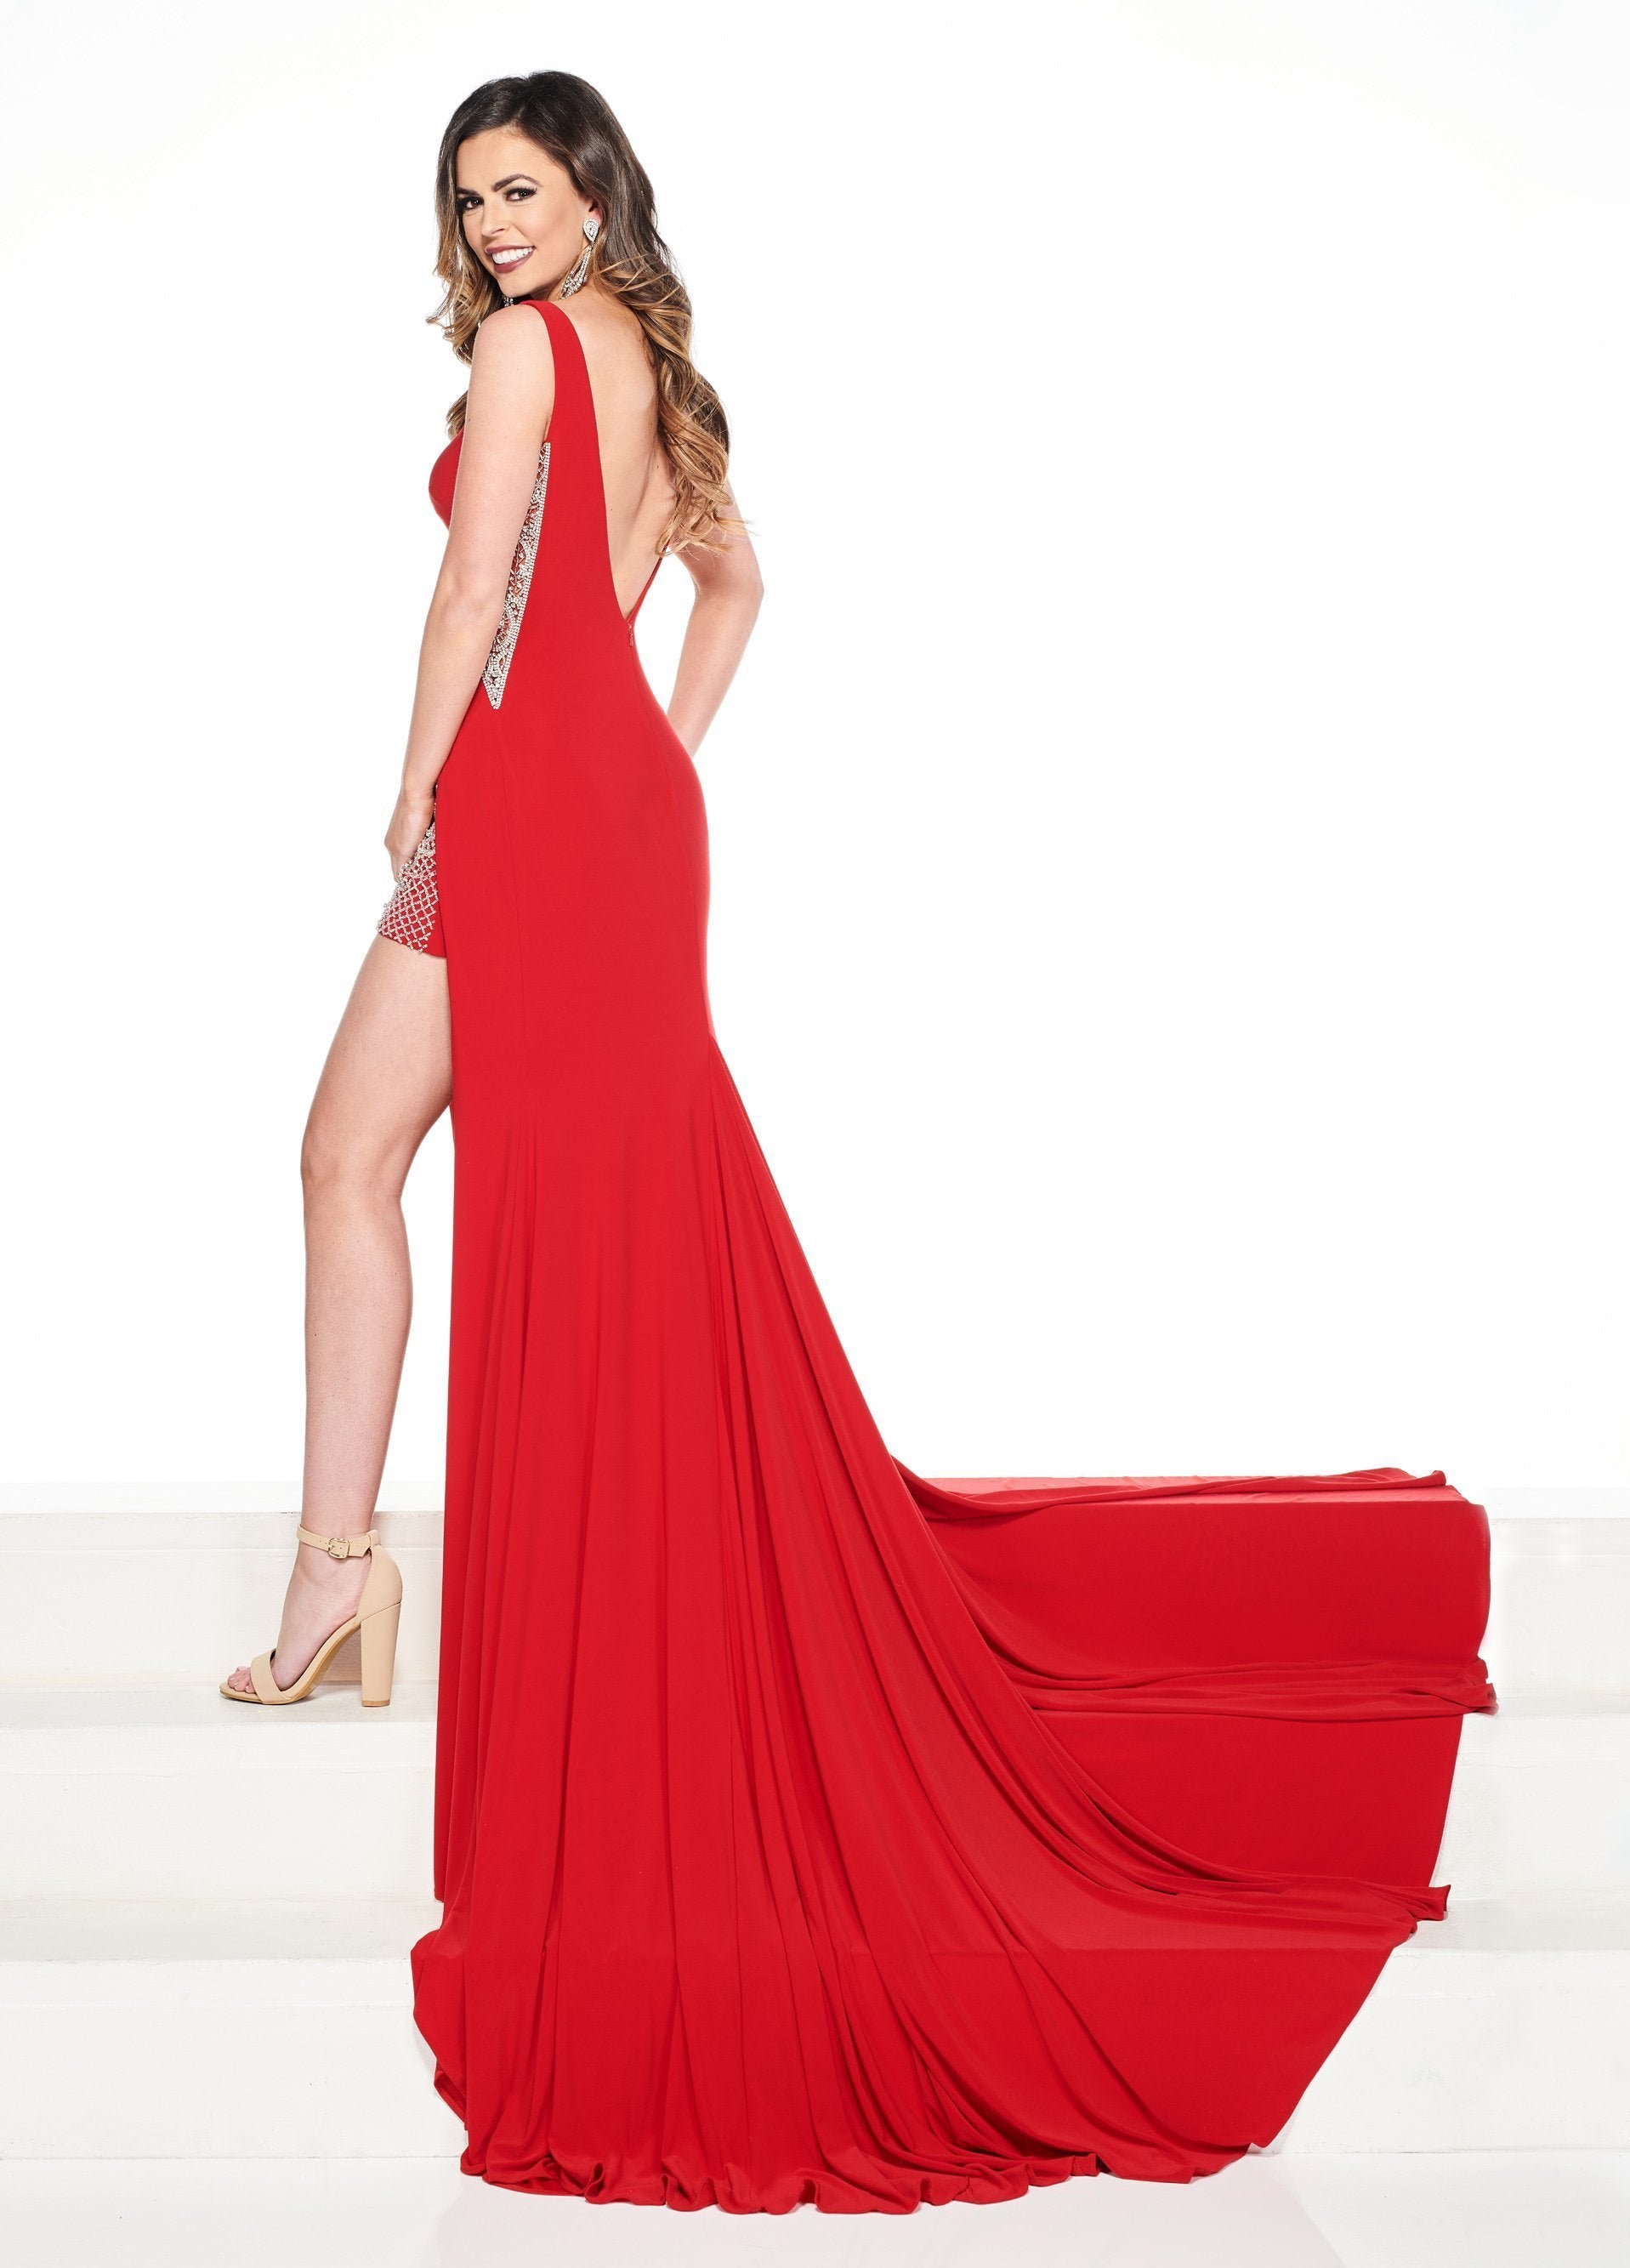 Rachel Allan Primadonna - 5091 Beaded Bateau Jersey Trumpet Dress In Red